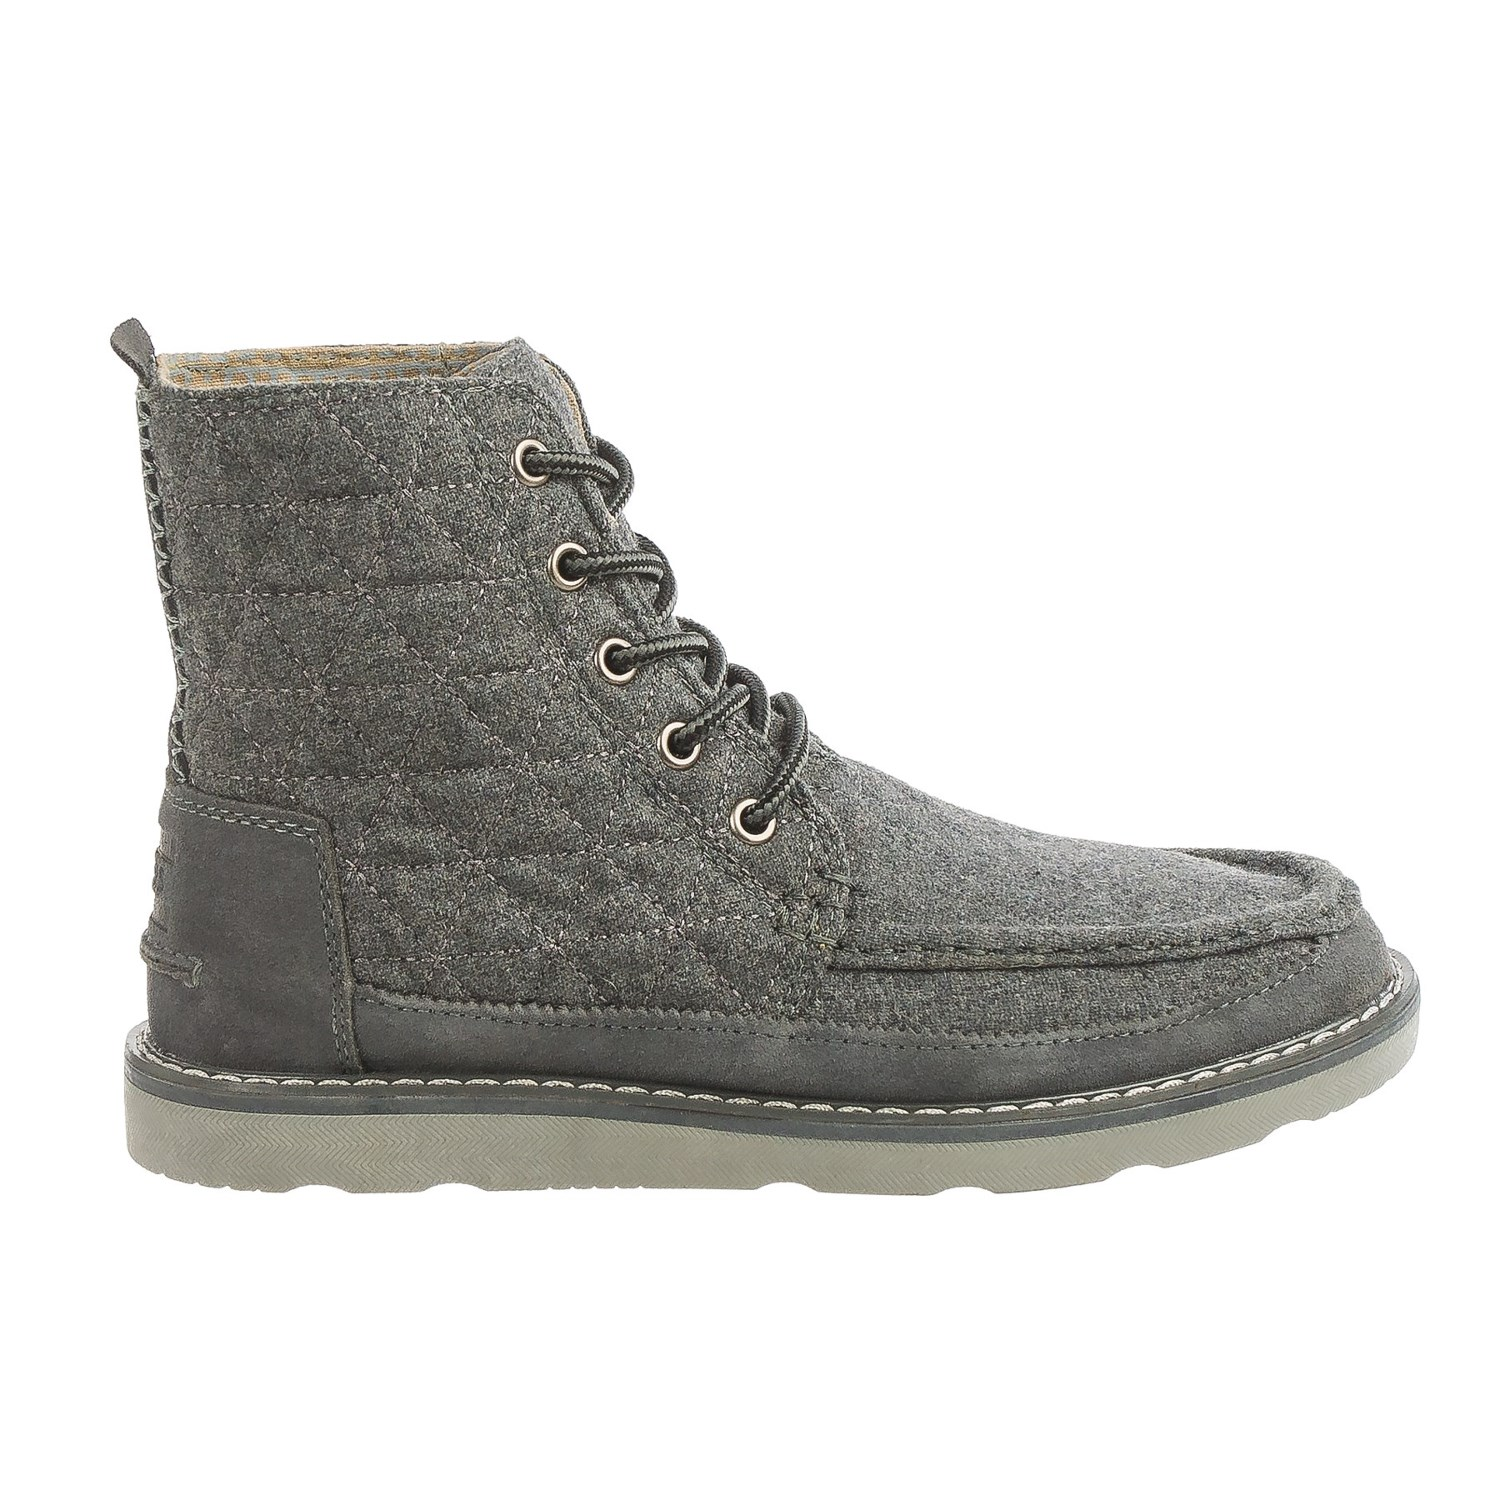 toms searcher boots for